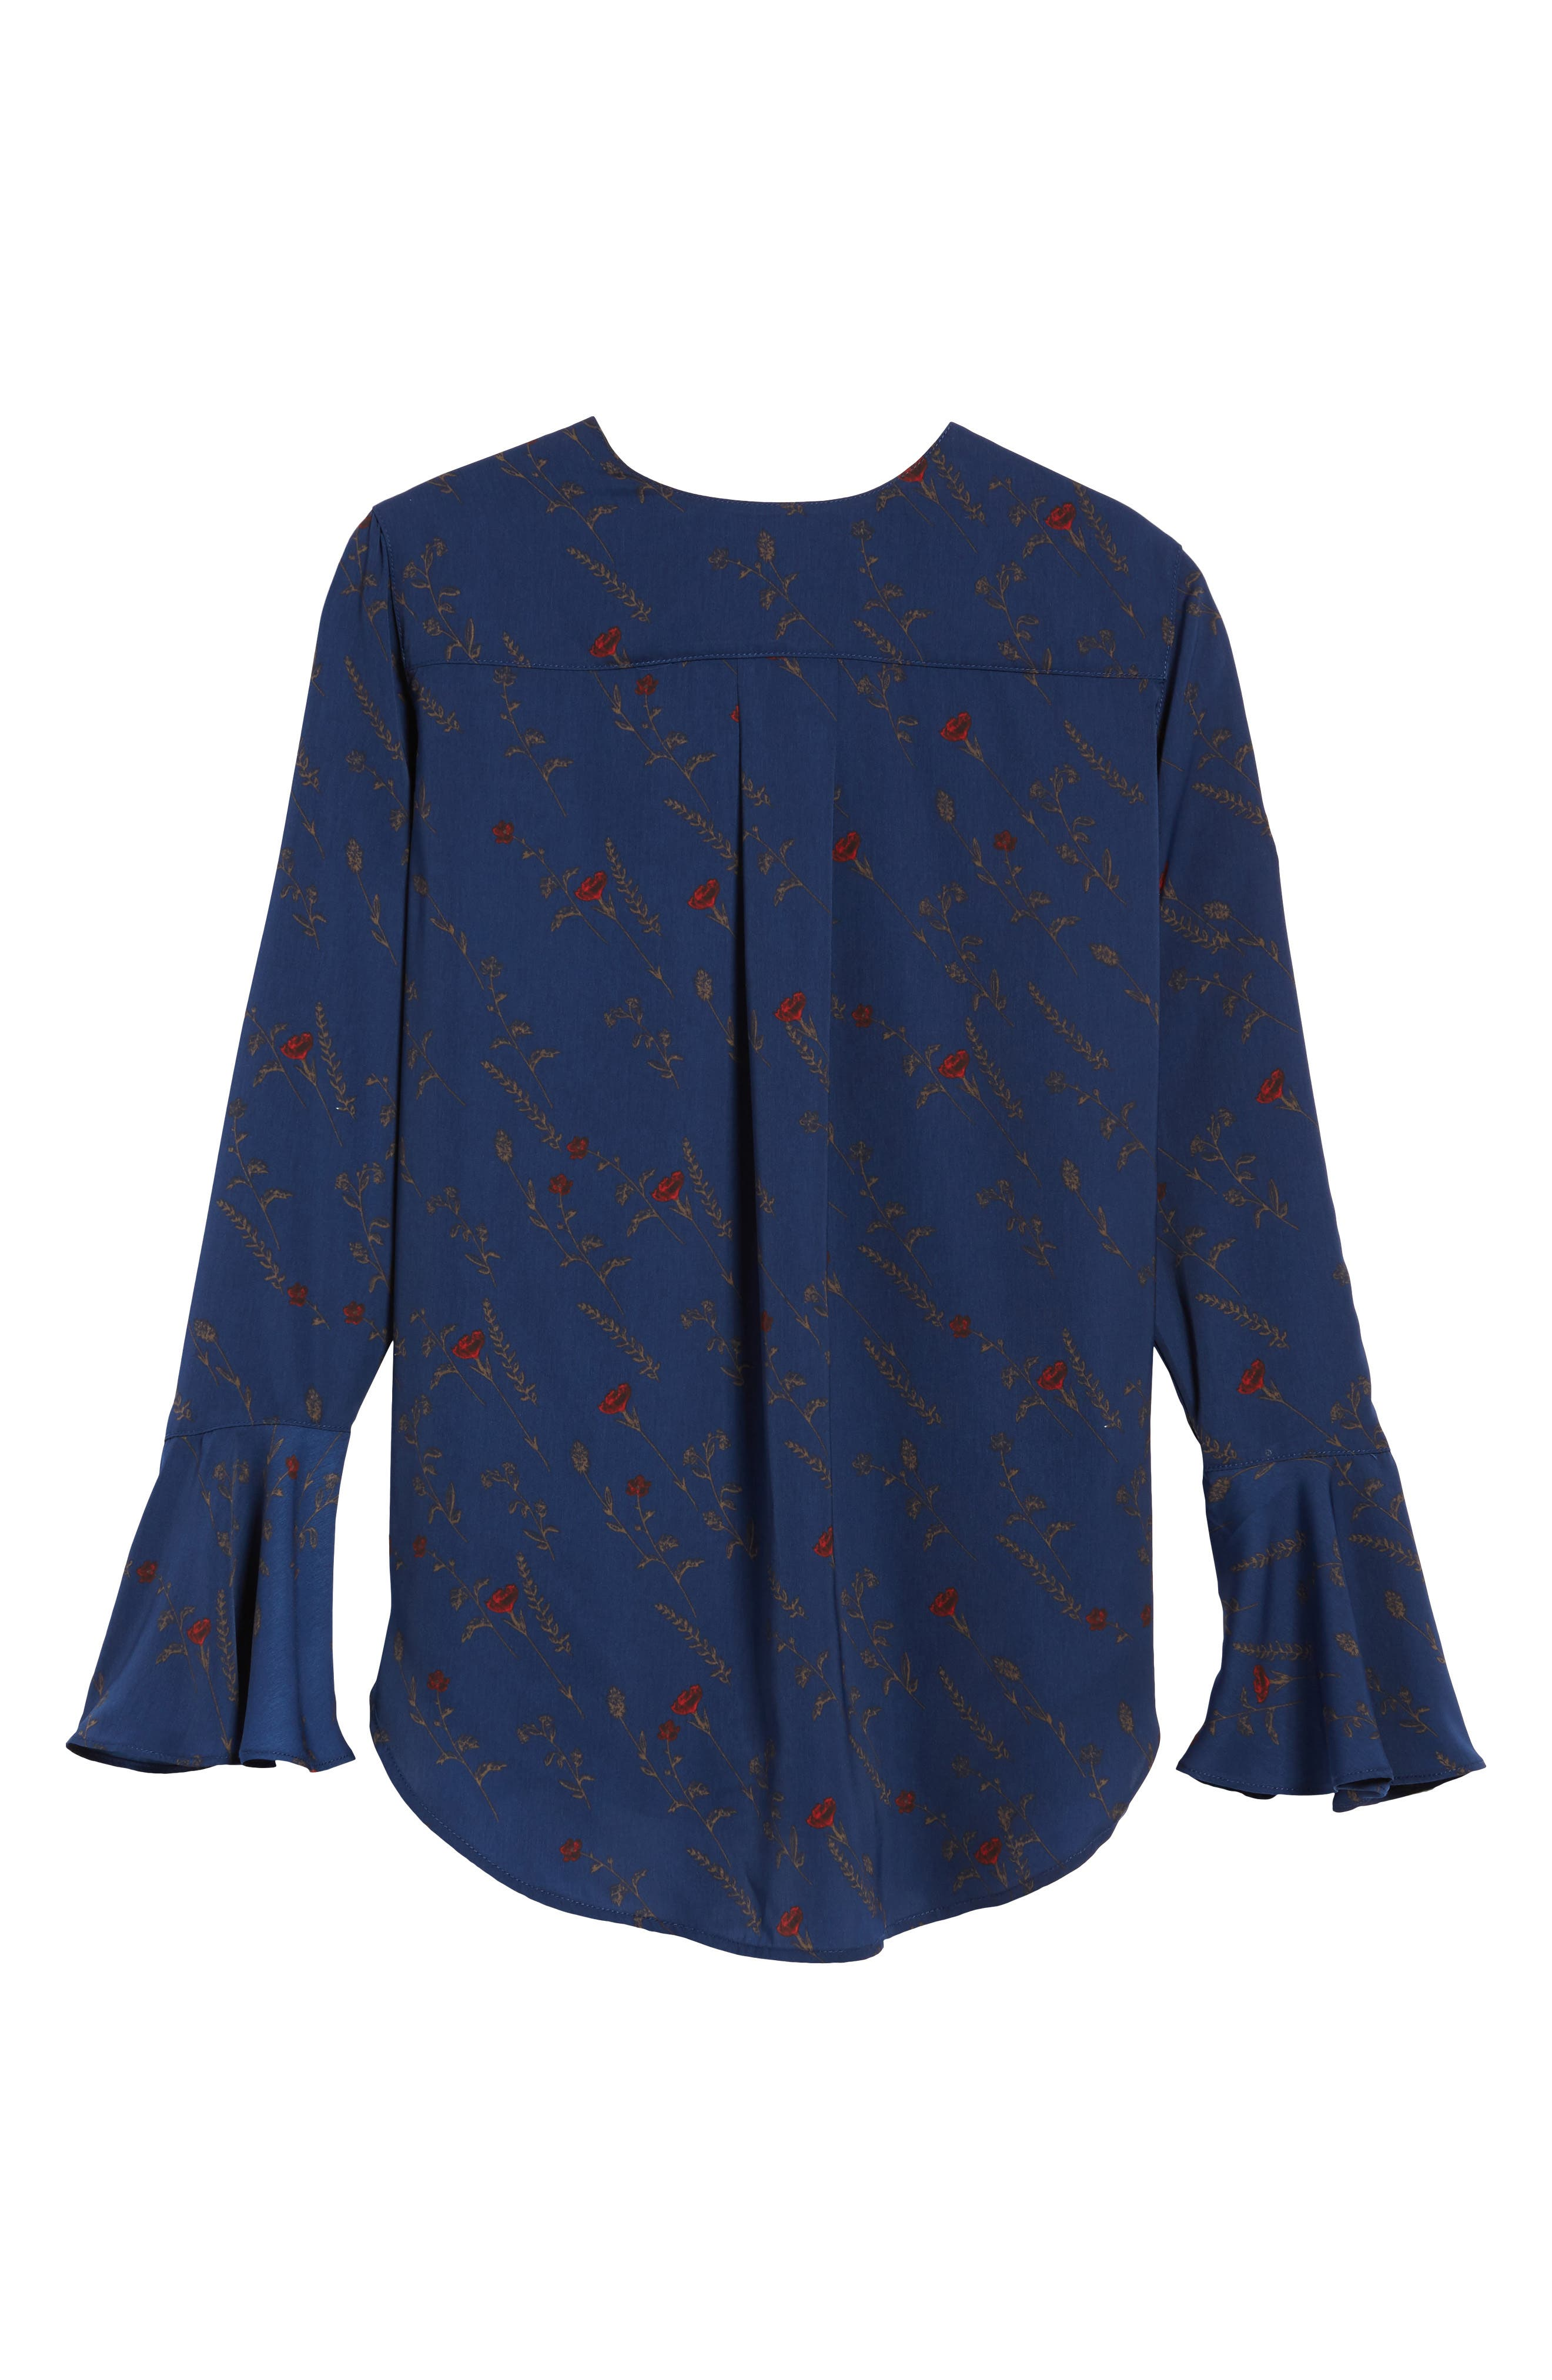 Bell Sleeve Top,                             Alternate thumbnail 6, color,                             400